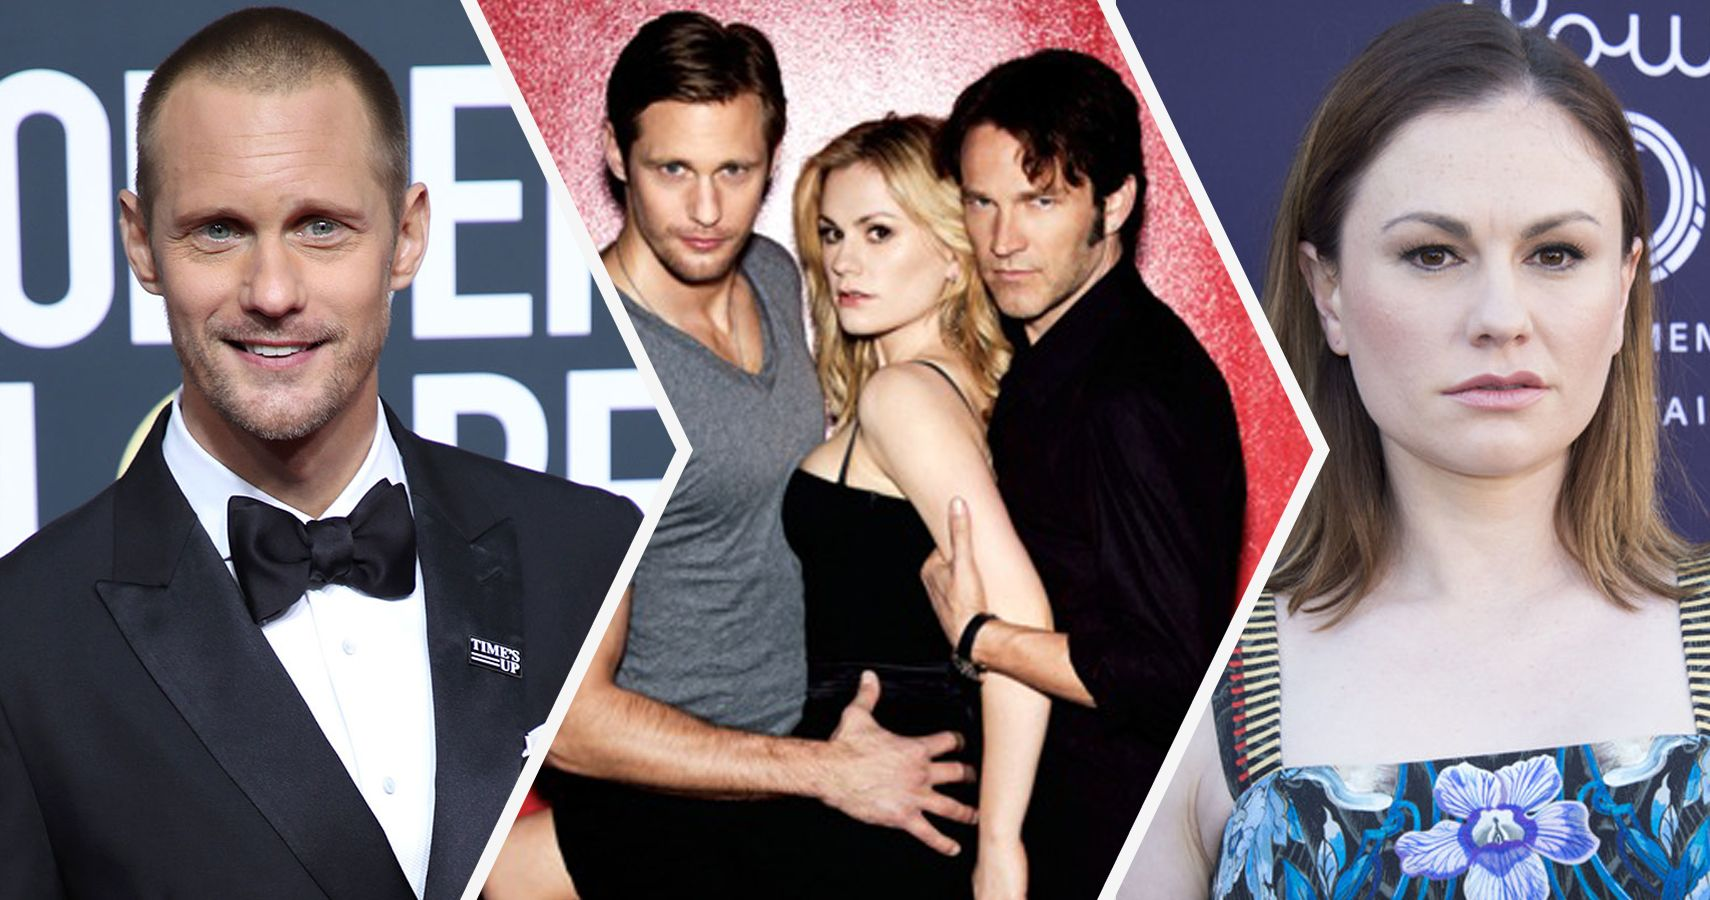 What The Cast Of True Blood Looked Like In The First Episode